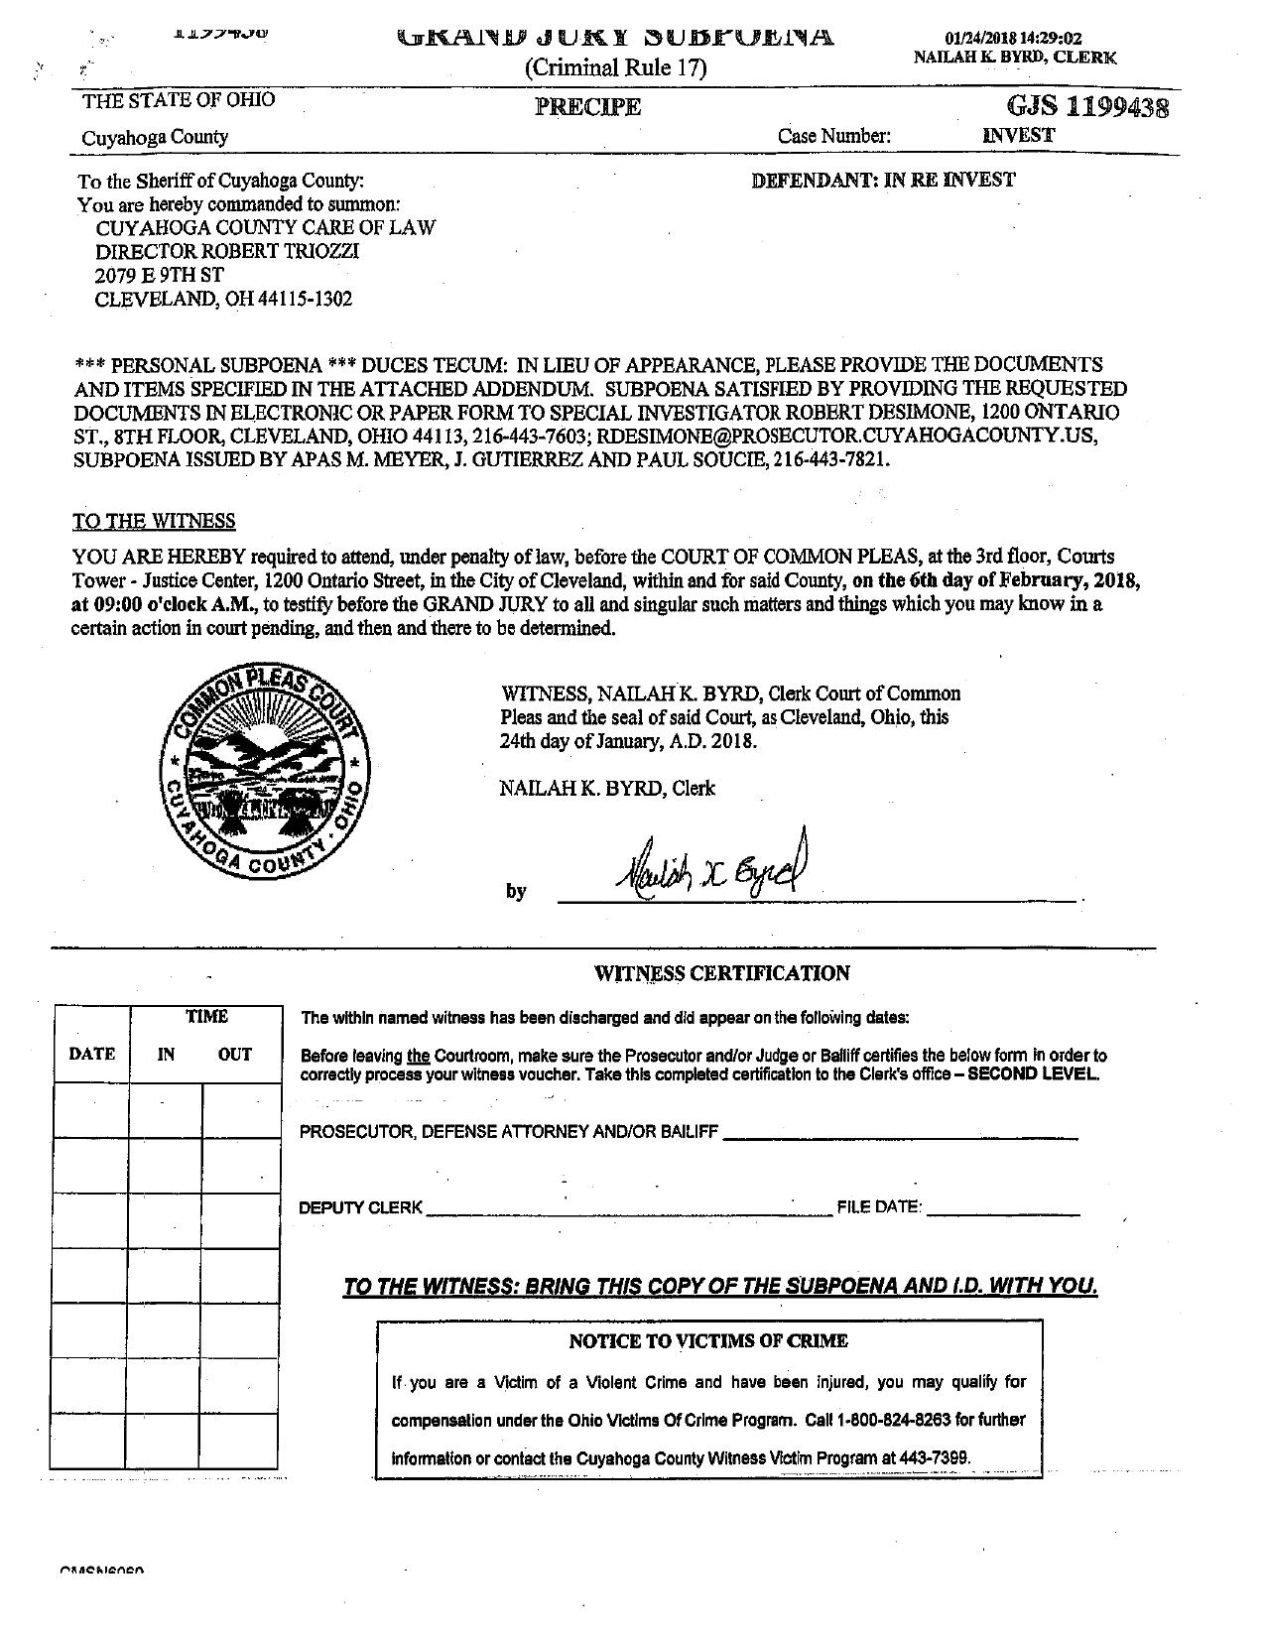 Budish Subpoenaed For Records On Chief Of Staff Others Local News